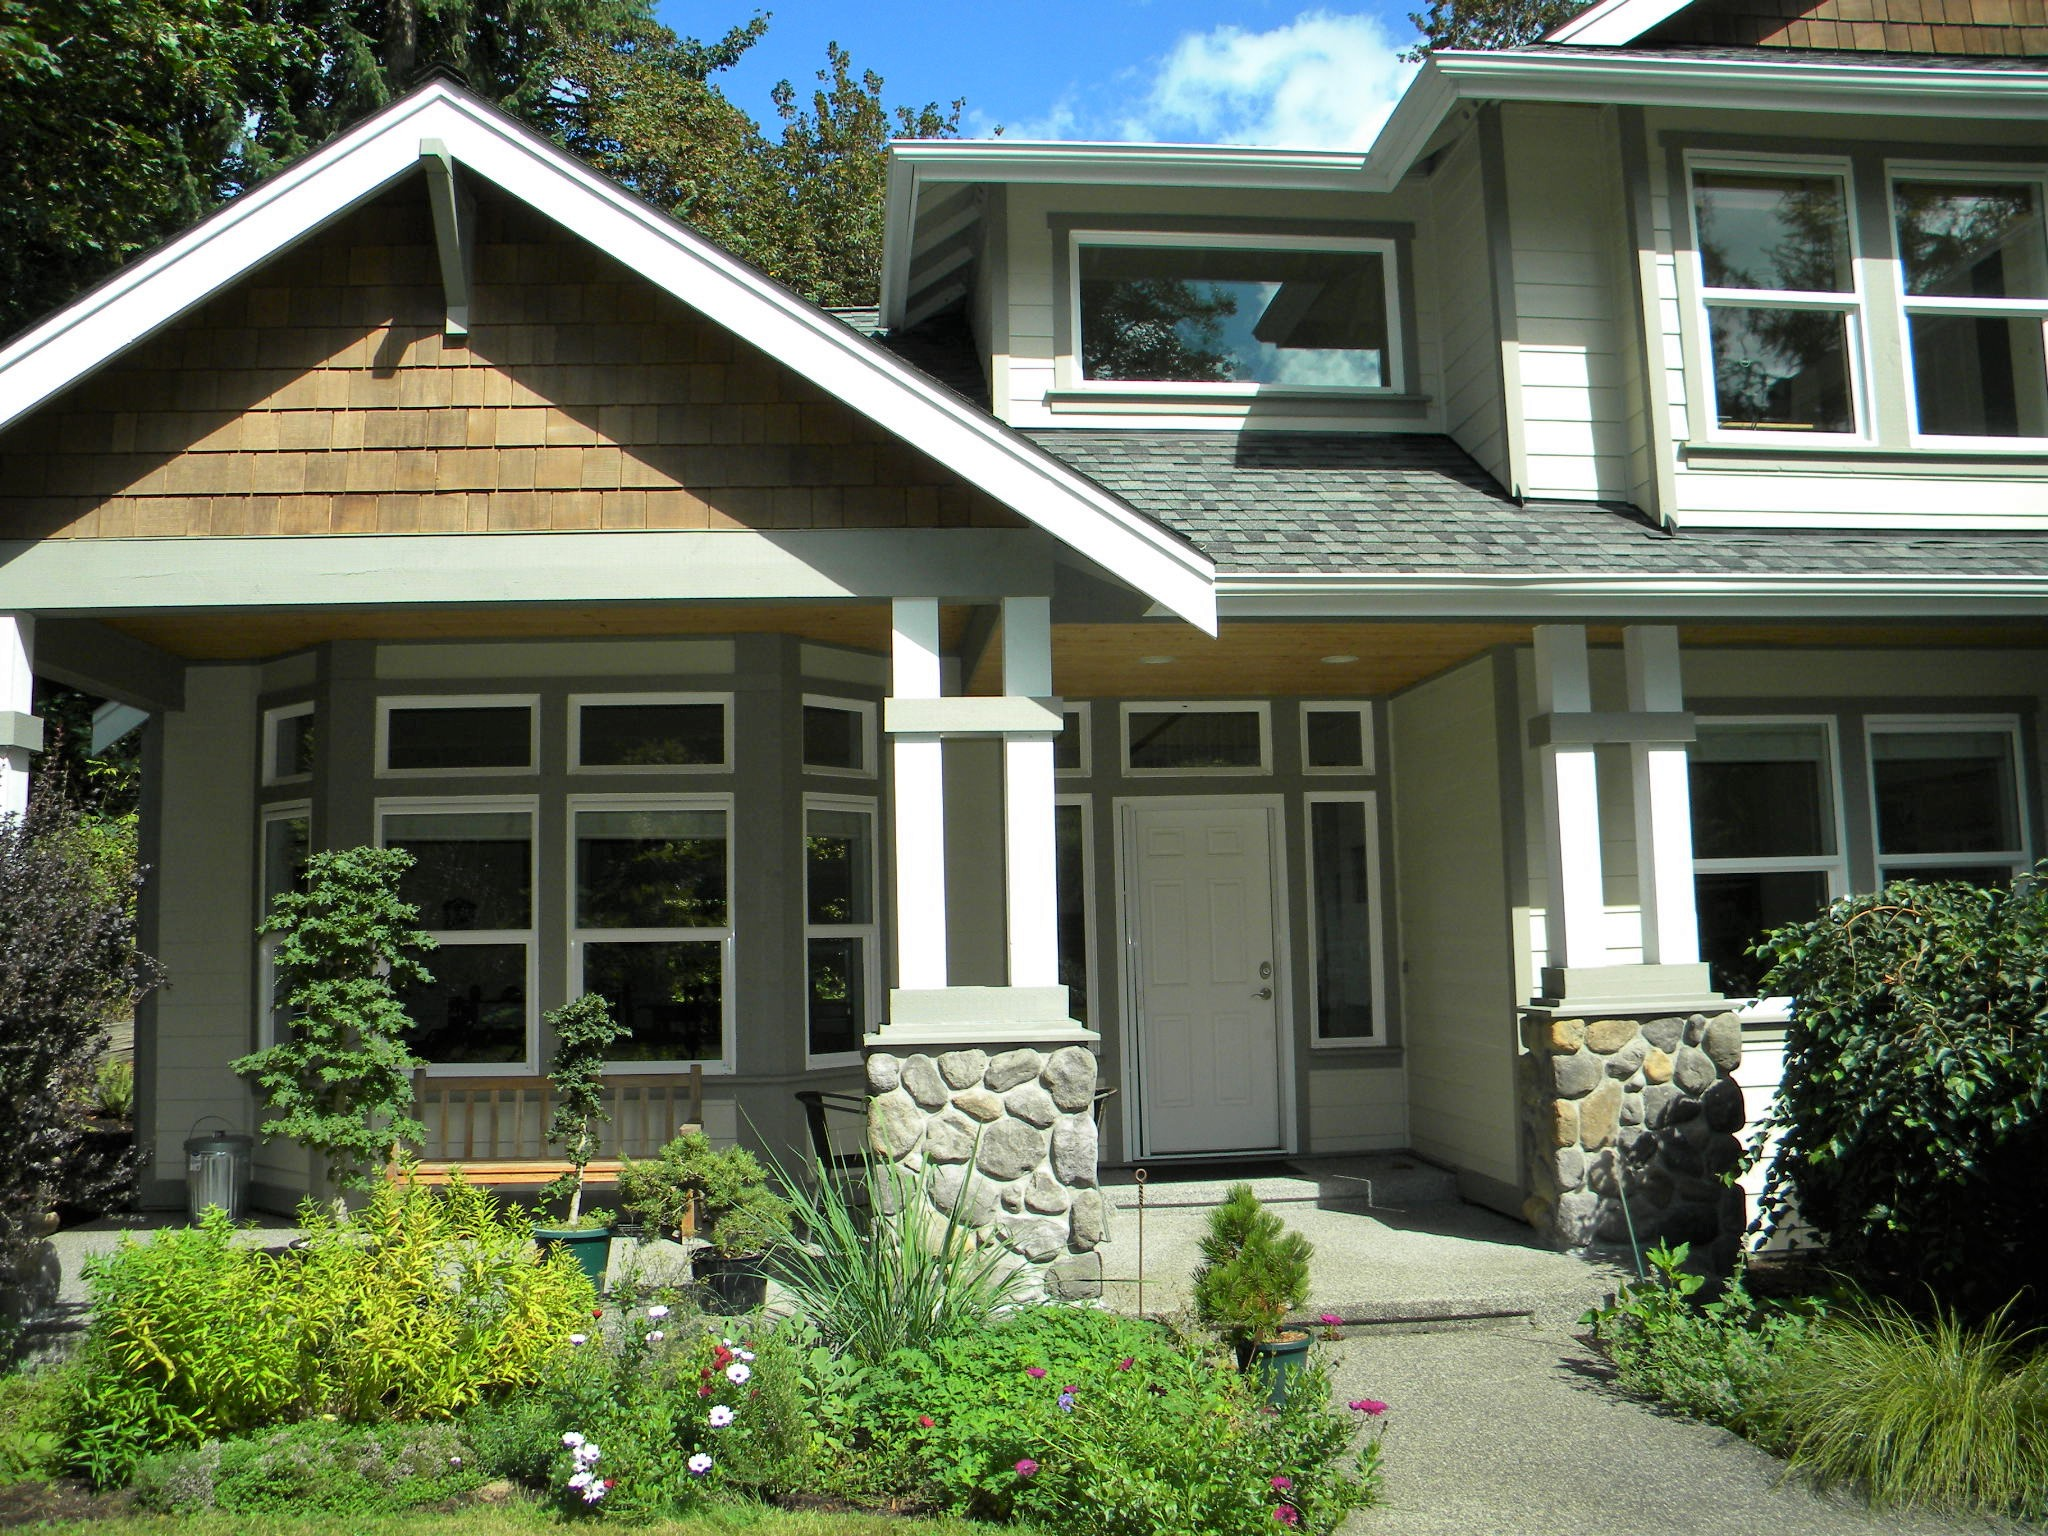 Craftsman Home in Snohomish